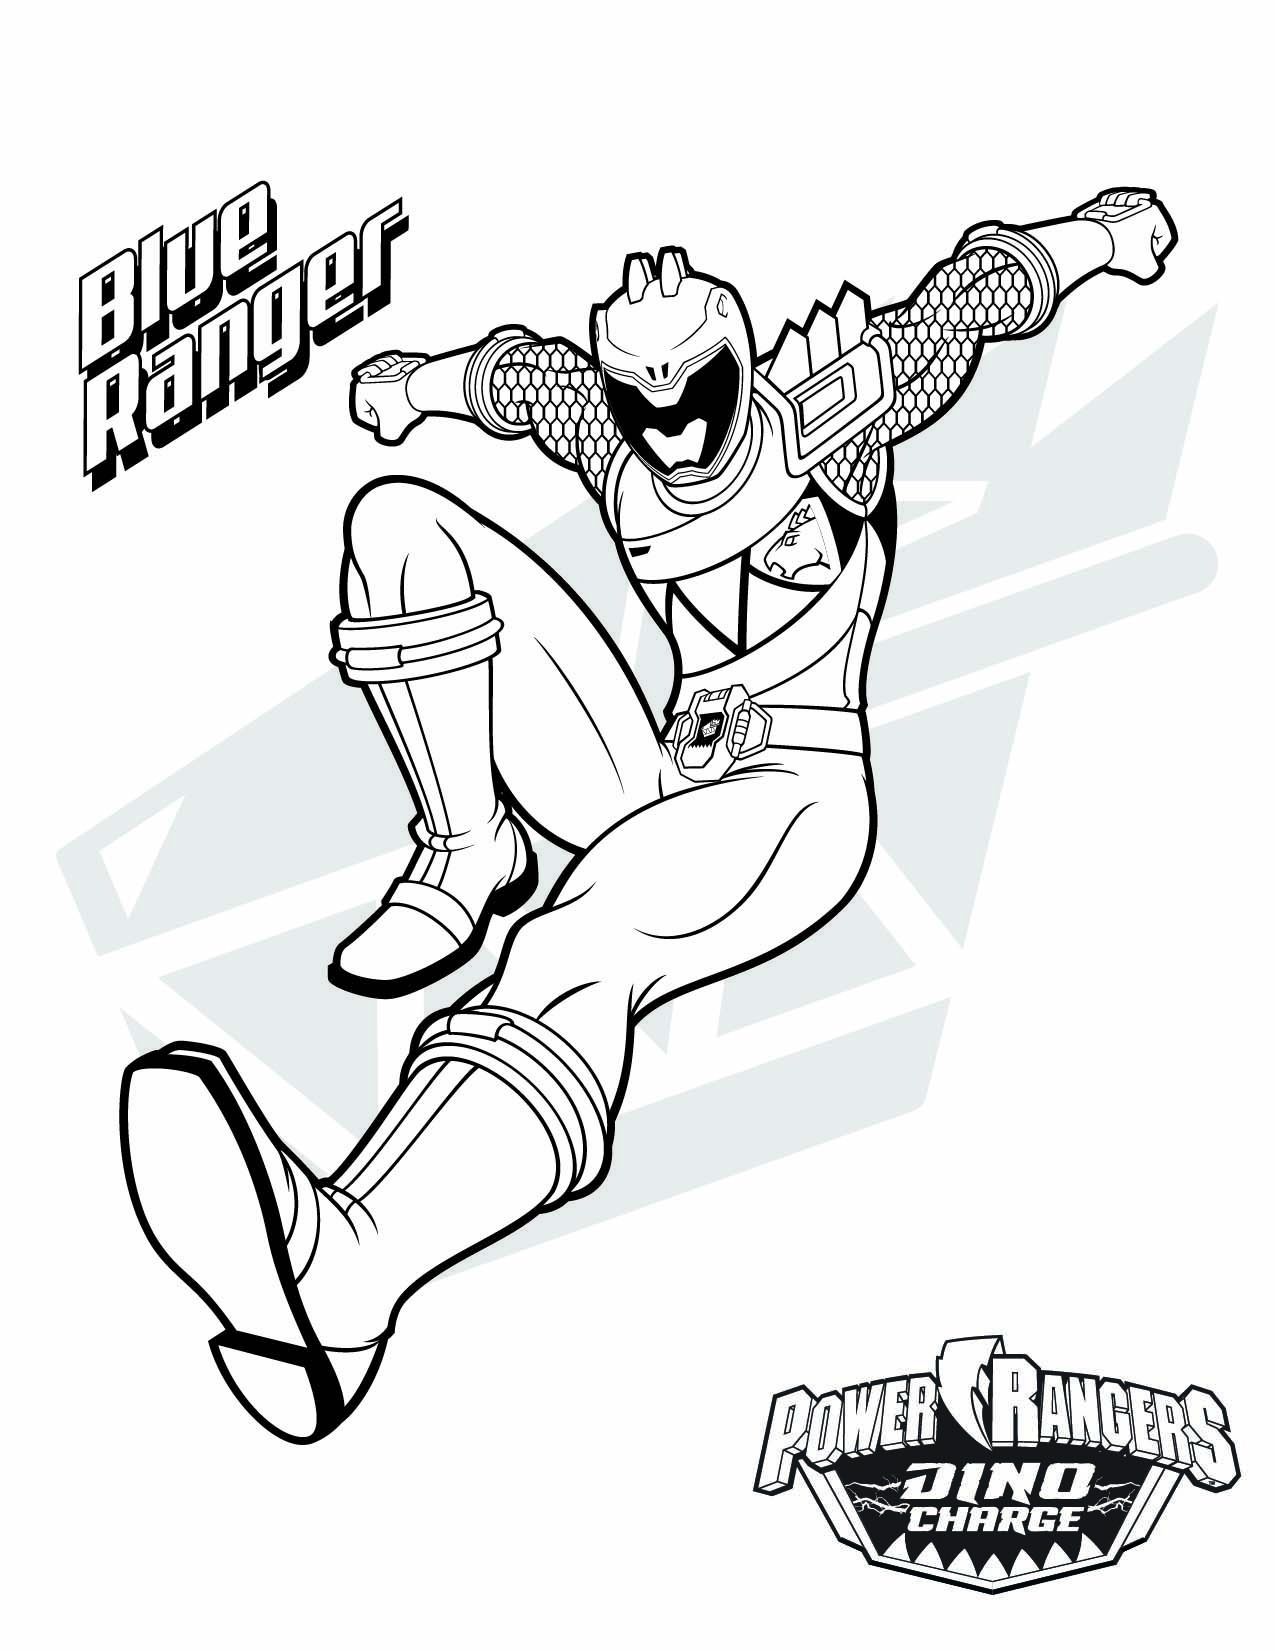 Red Power Ranger Coloring Page 1024x791 Jpg 1024 791 Power